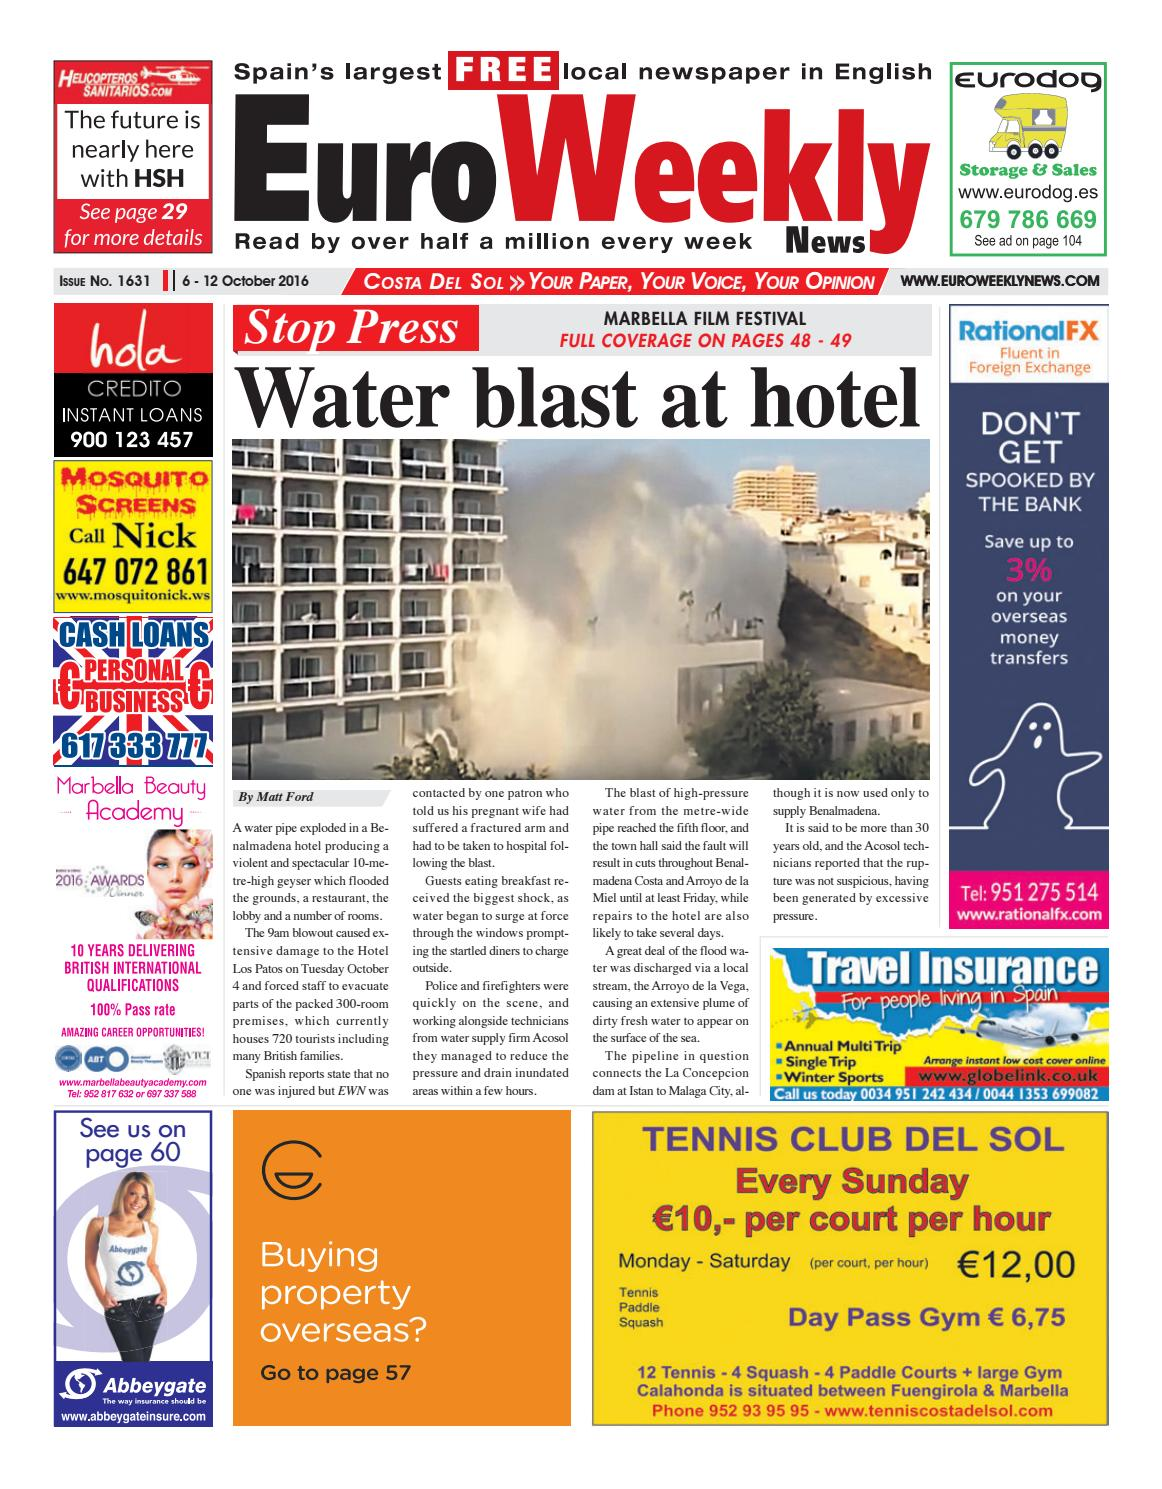 Euro weekly news costa del sol 6 12 october 2016 issue 1631 by euro weekly news costa del sol 6 12 october 2016 issue 1631 by euro weekly news media sa issuu fandeluxe Choice Image